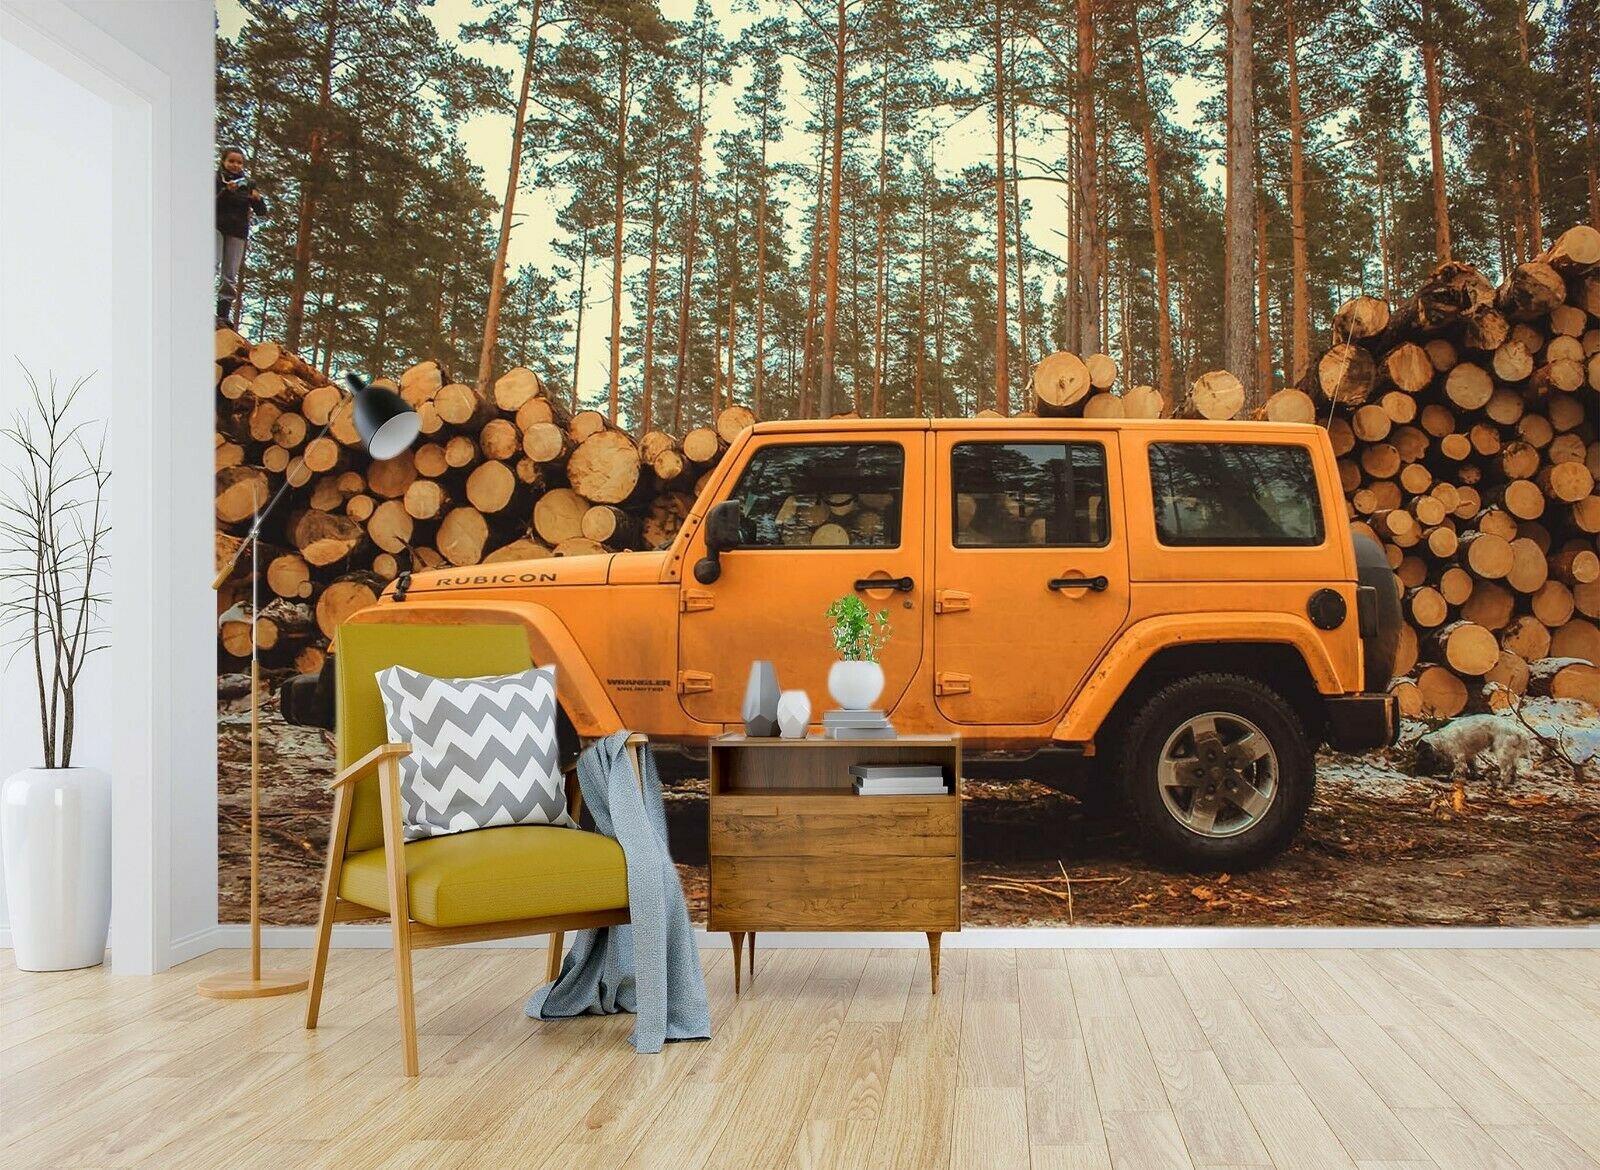 3D Logging Vehicle N892 Transport Wallpaper Mural Self-adhesive Removable Amy